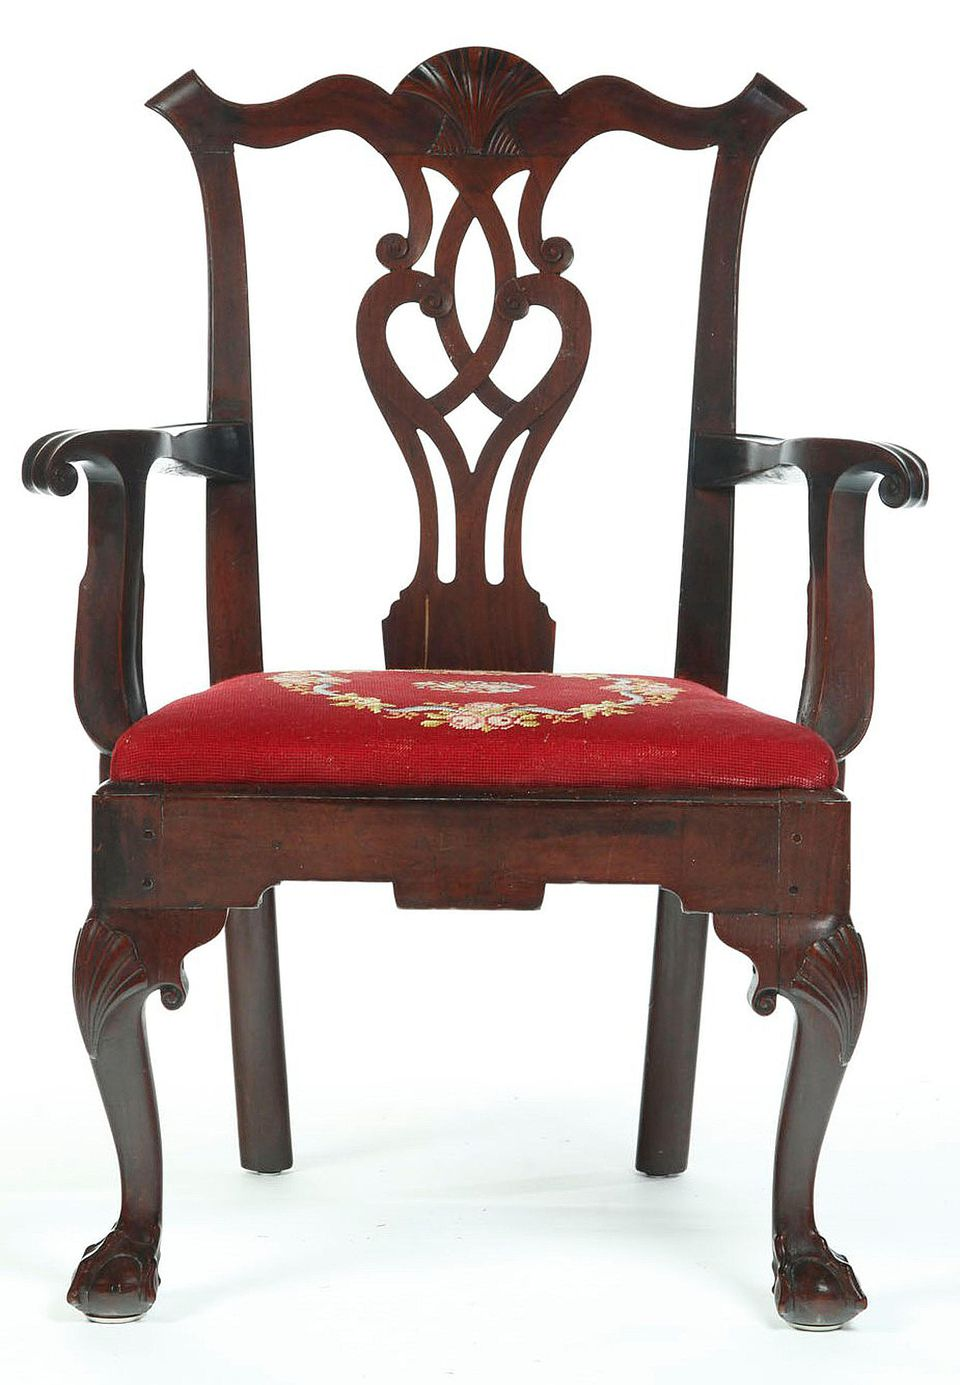 Chippendale Style Chair with Yoke Back, Pierced Splat, Cabriole Legs, and  Ball and Claw Feet, c. 1765-1775. – Image via. Traveller Location